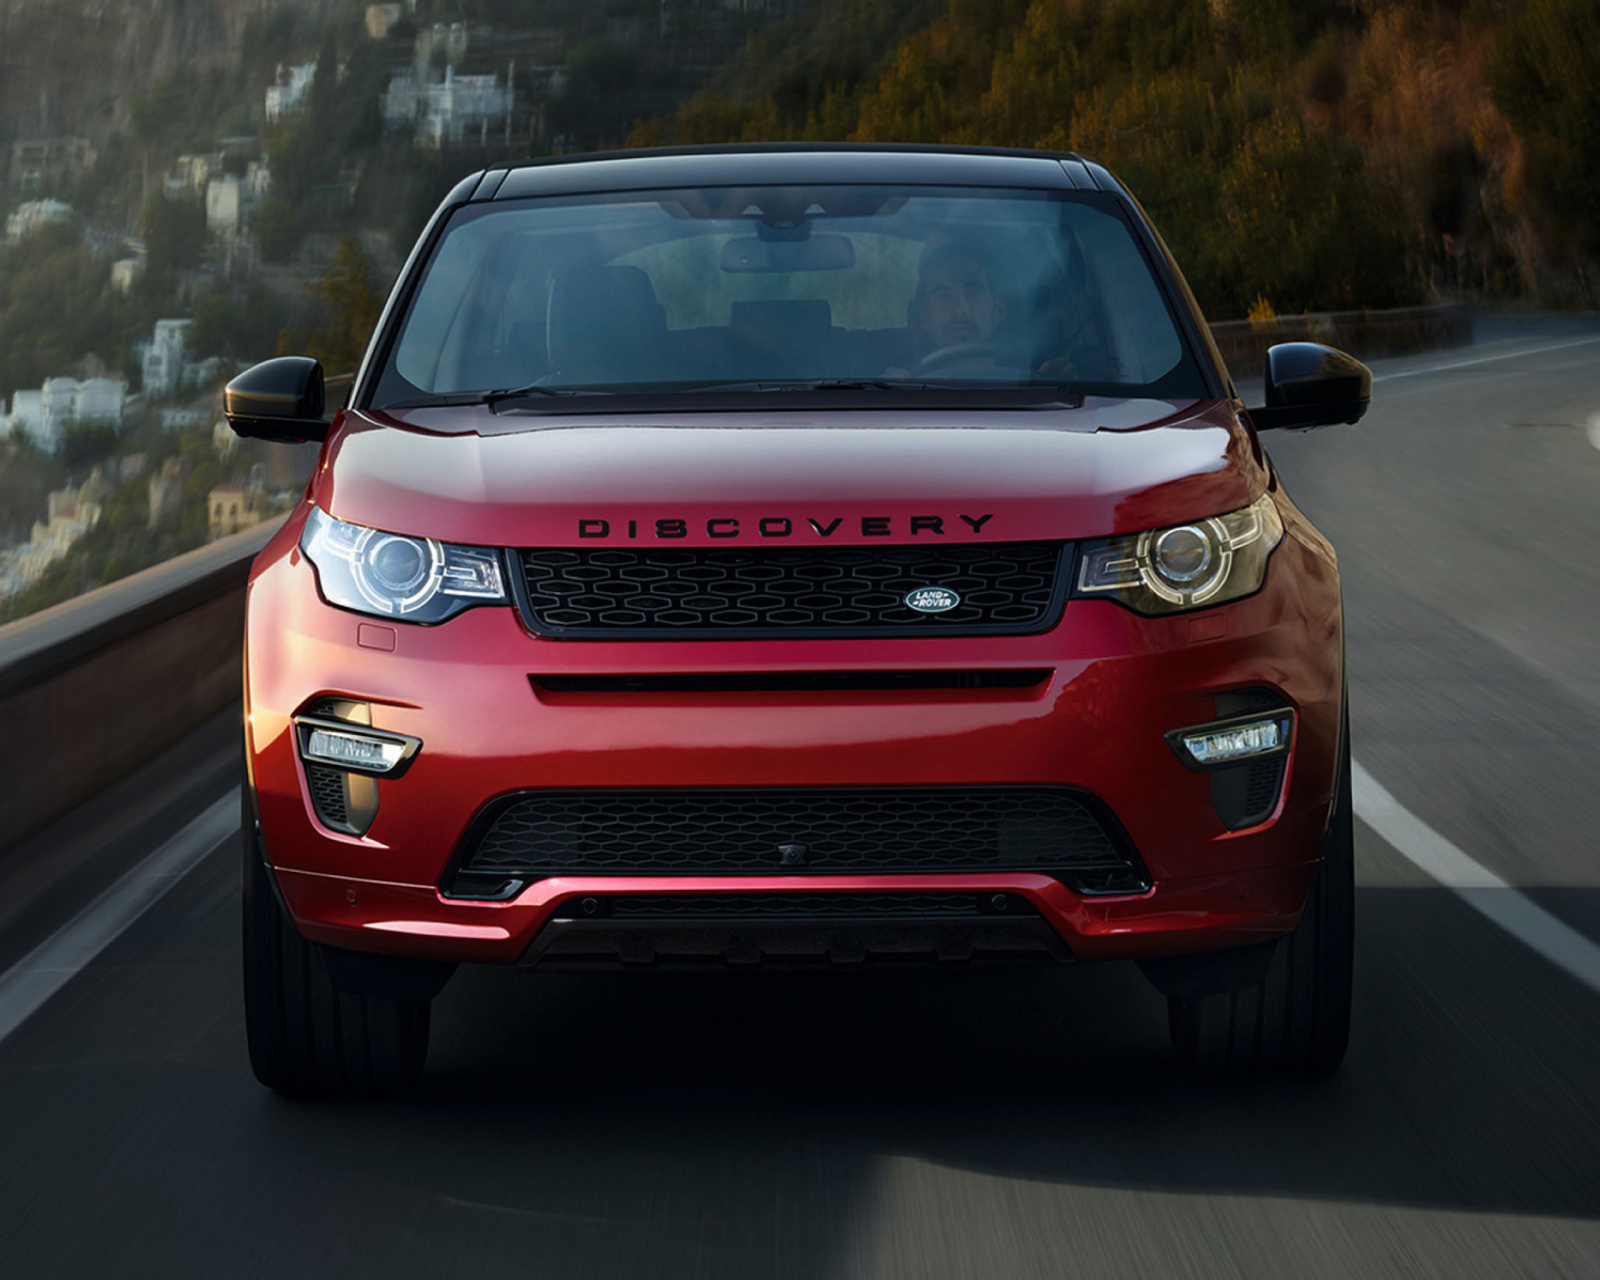 Land Rover Discovery Sport HSE wallpaper 1600x1280